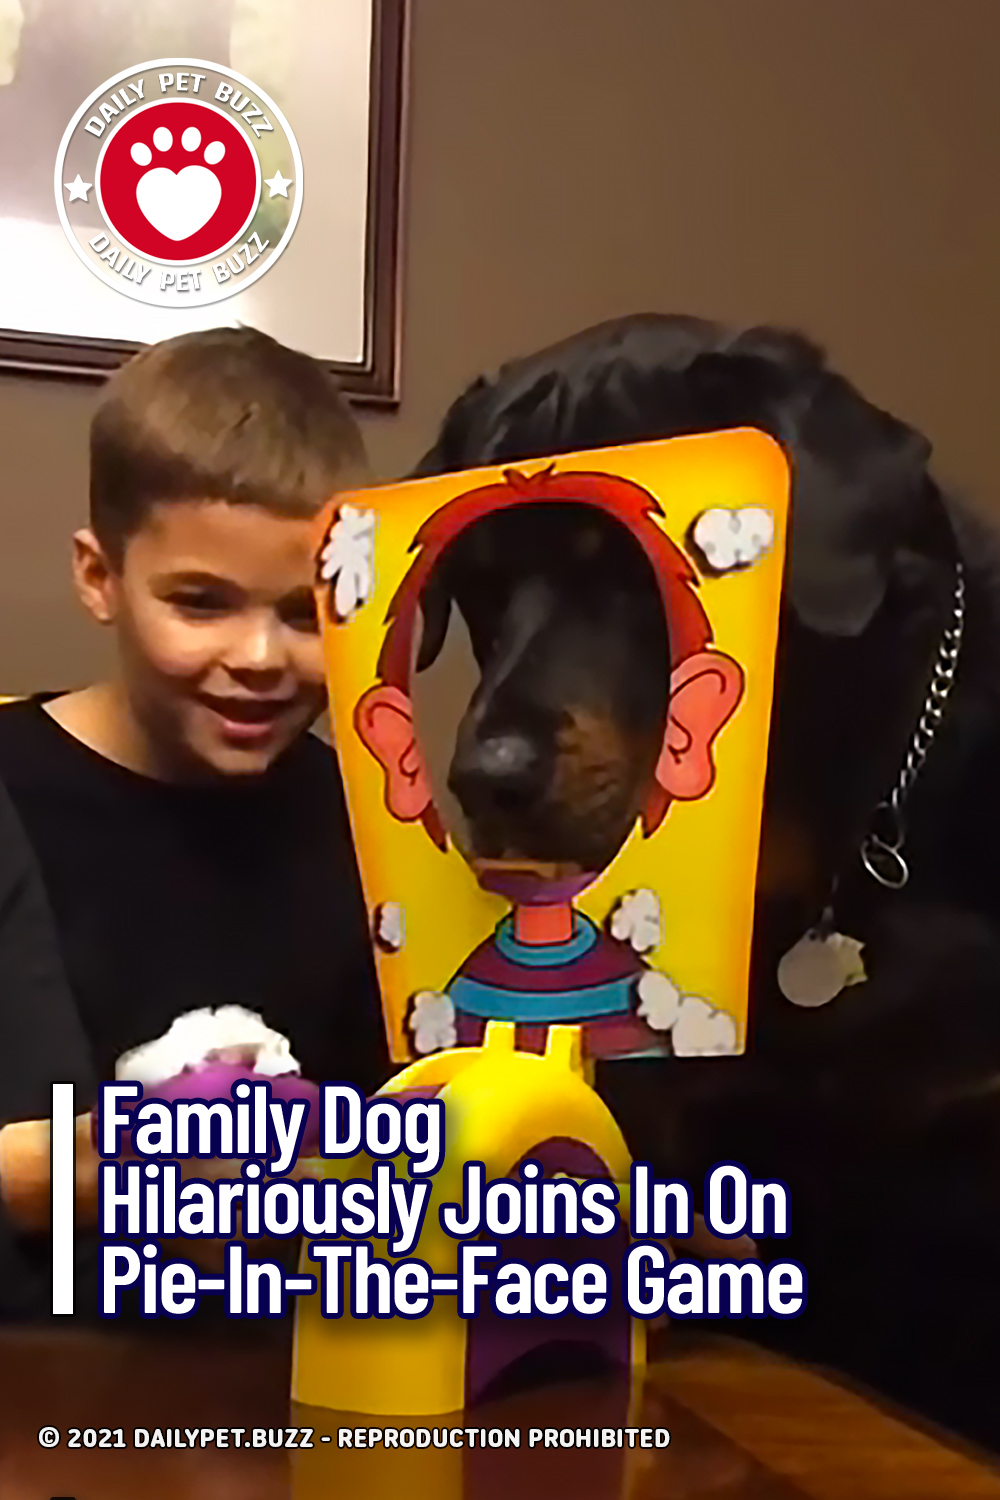 Family Dog Hilariously Joins In On Pie-In-The-Face Game